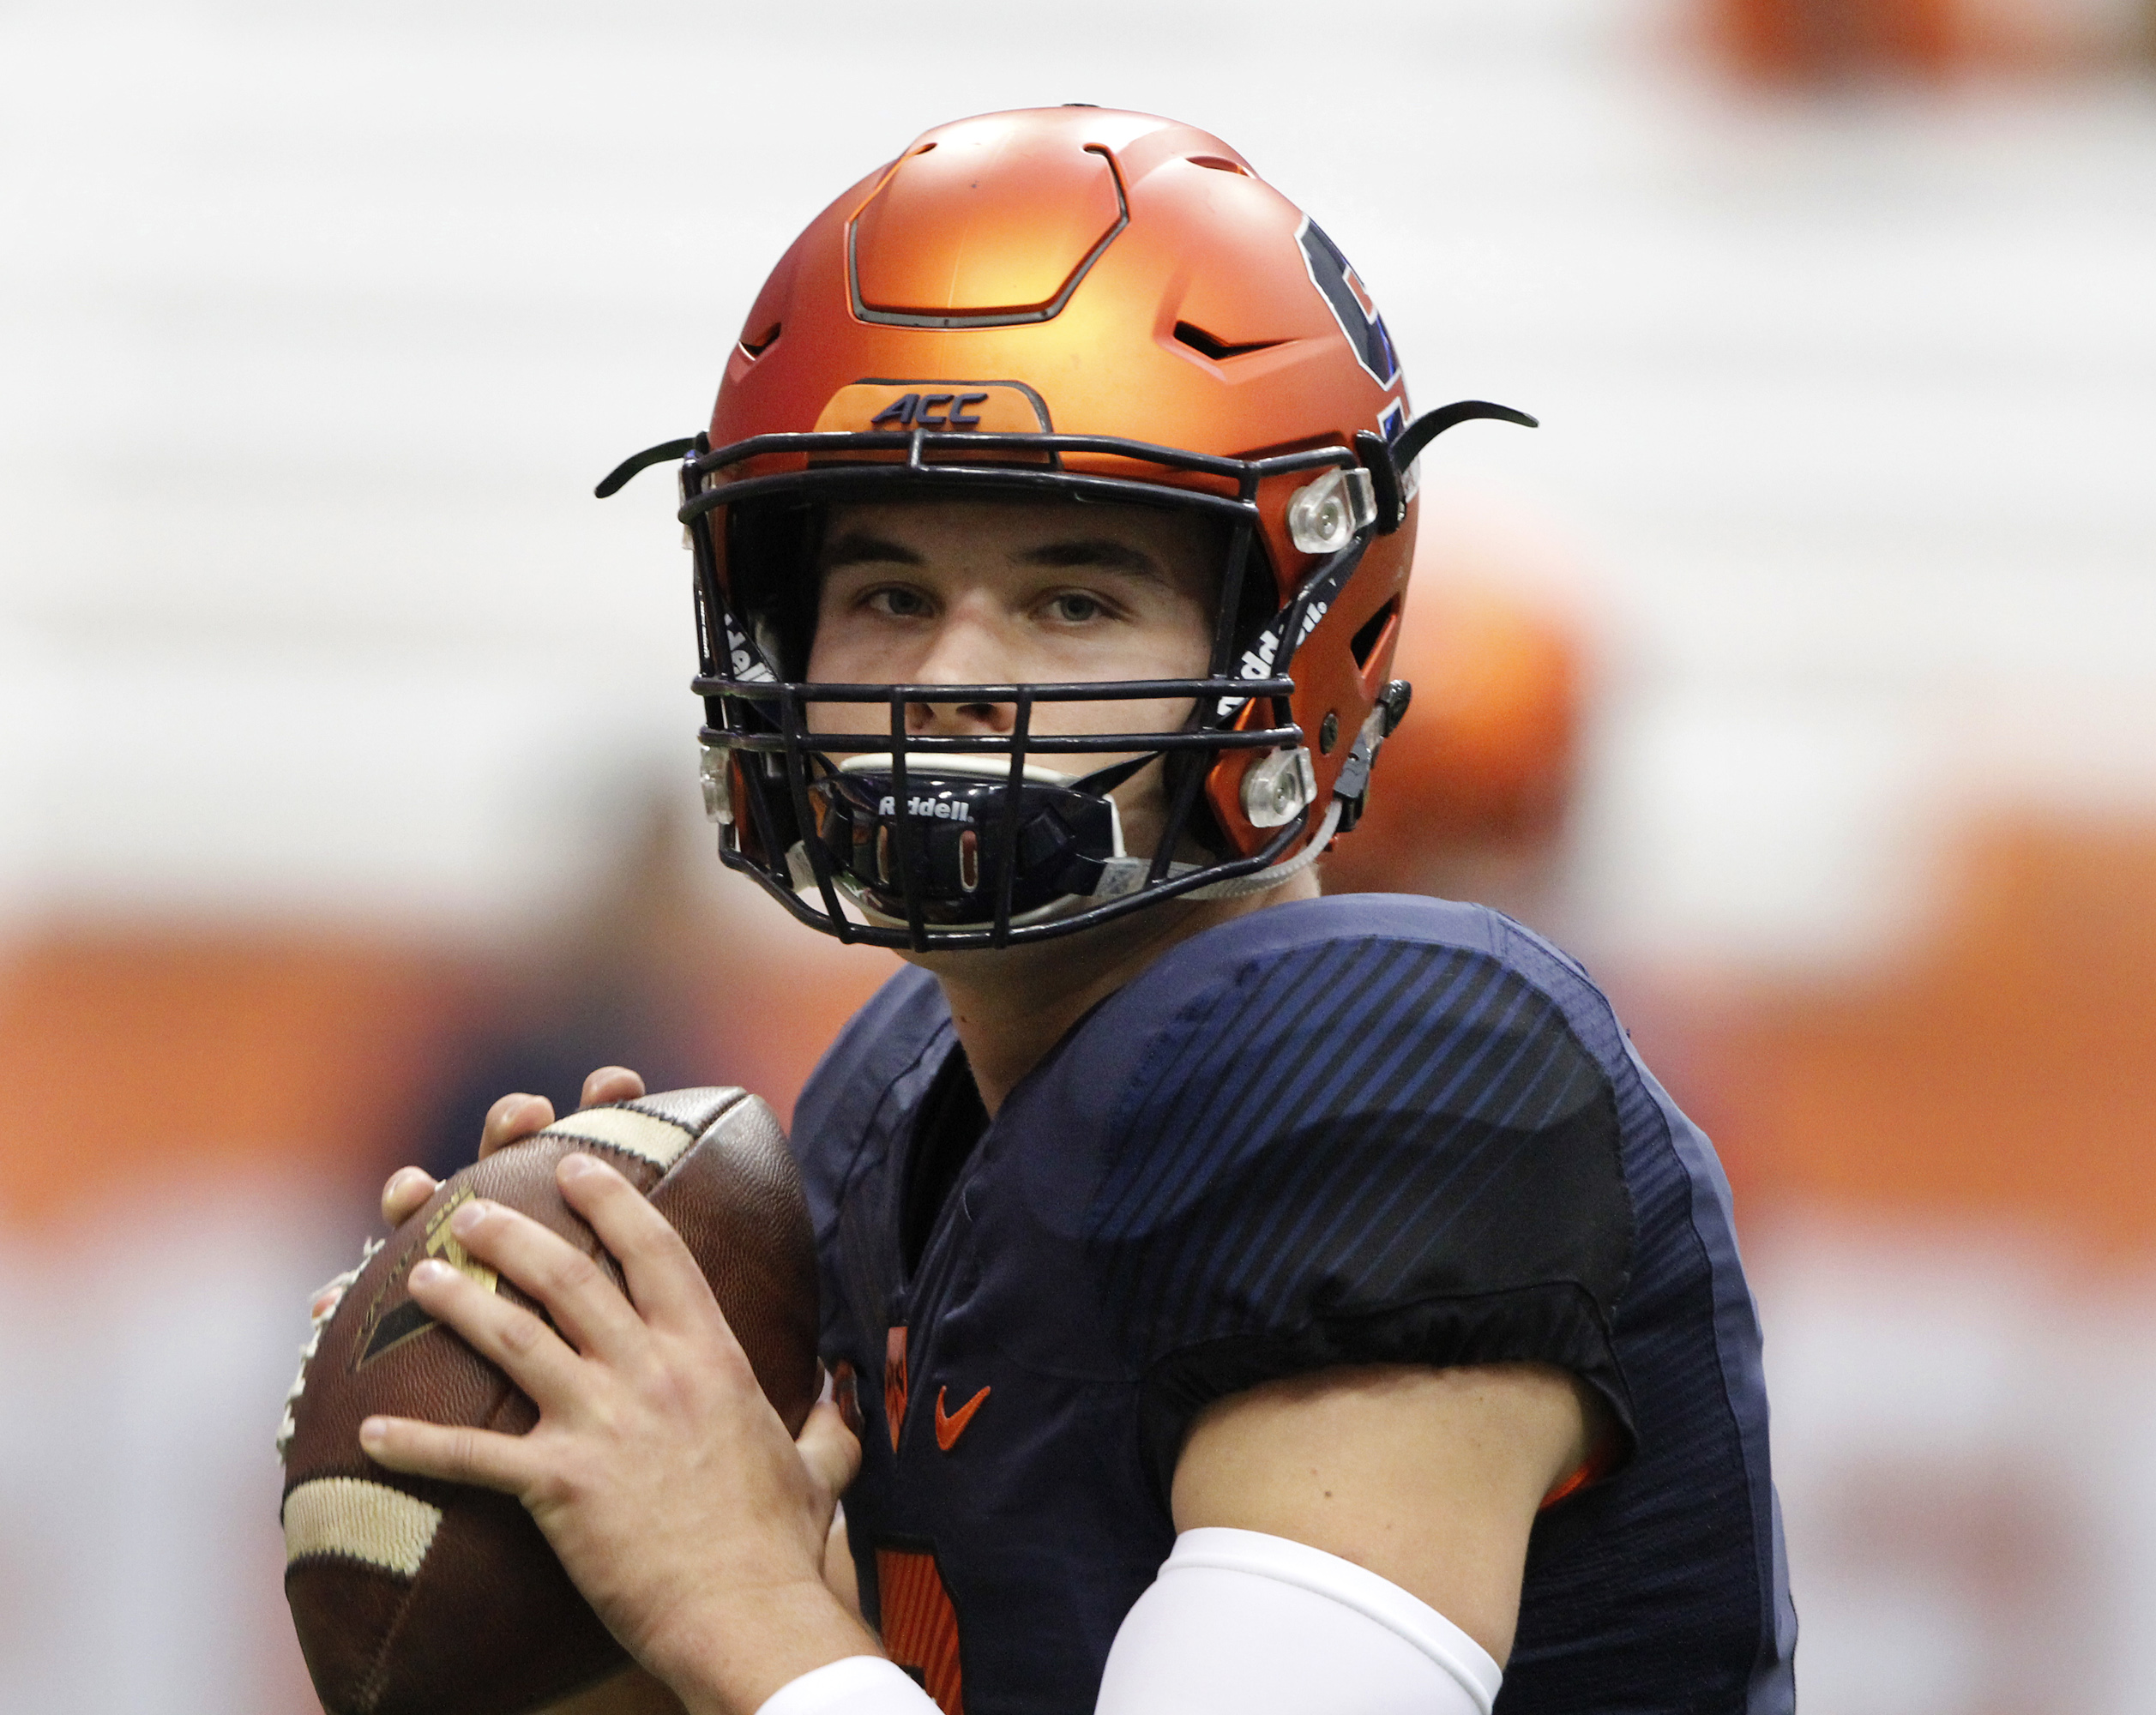 Syracuse's Eric Dungey passes the ball before an NCAA college football game against Pittsburgh in Syracuse, N.Y., Saturday, Oct. 24, 2015. (AP Photo/Nick Lisi)